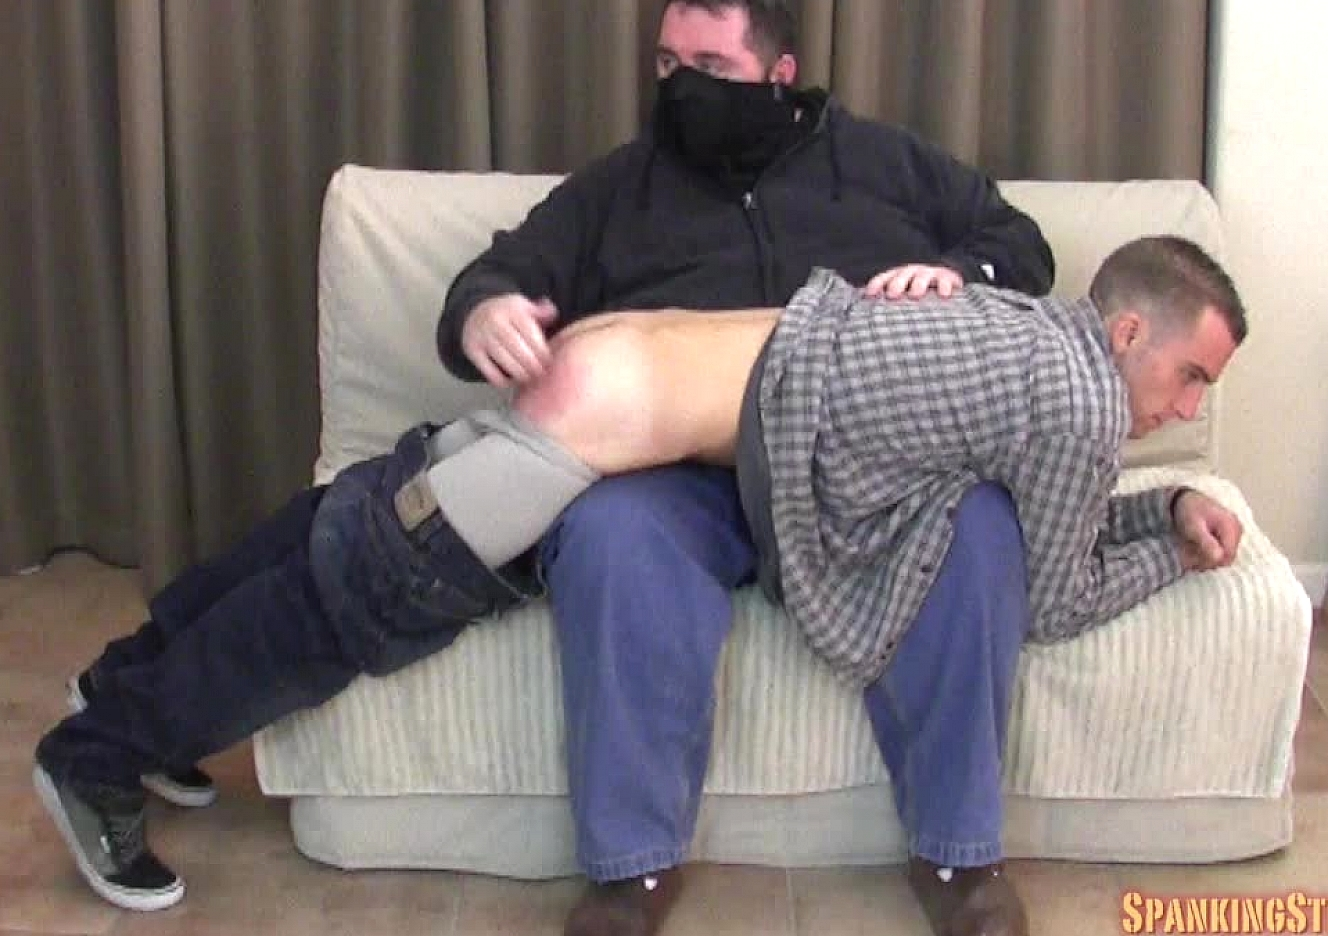 content/141114102_nicks_first_spanking/0.jpg